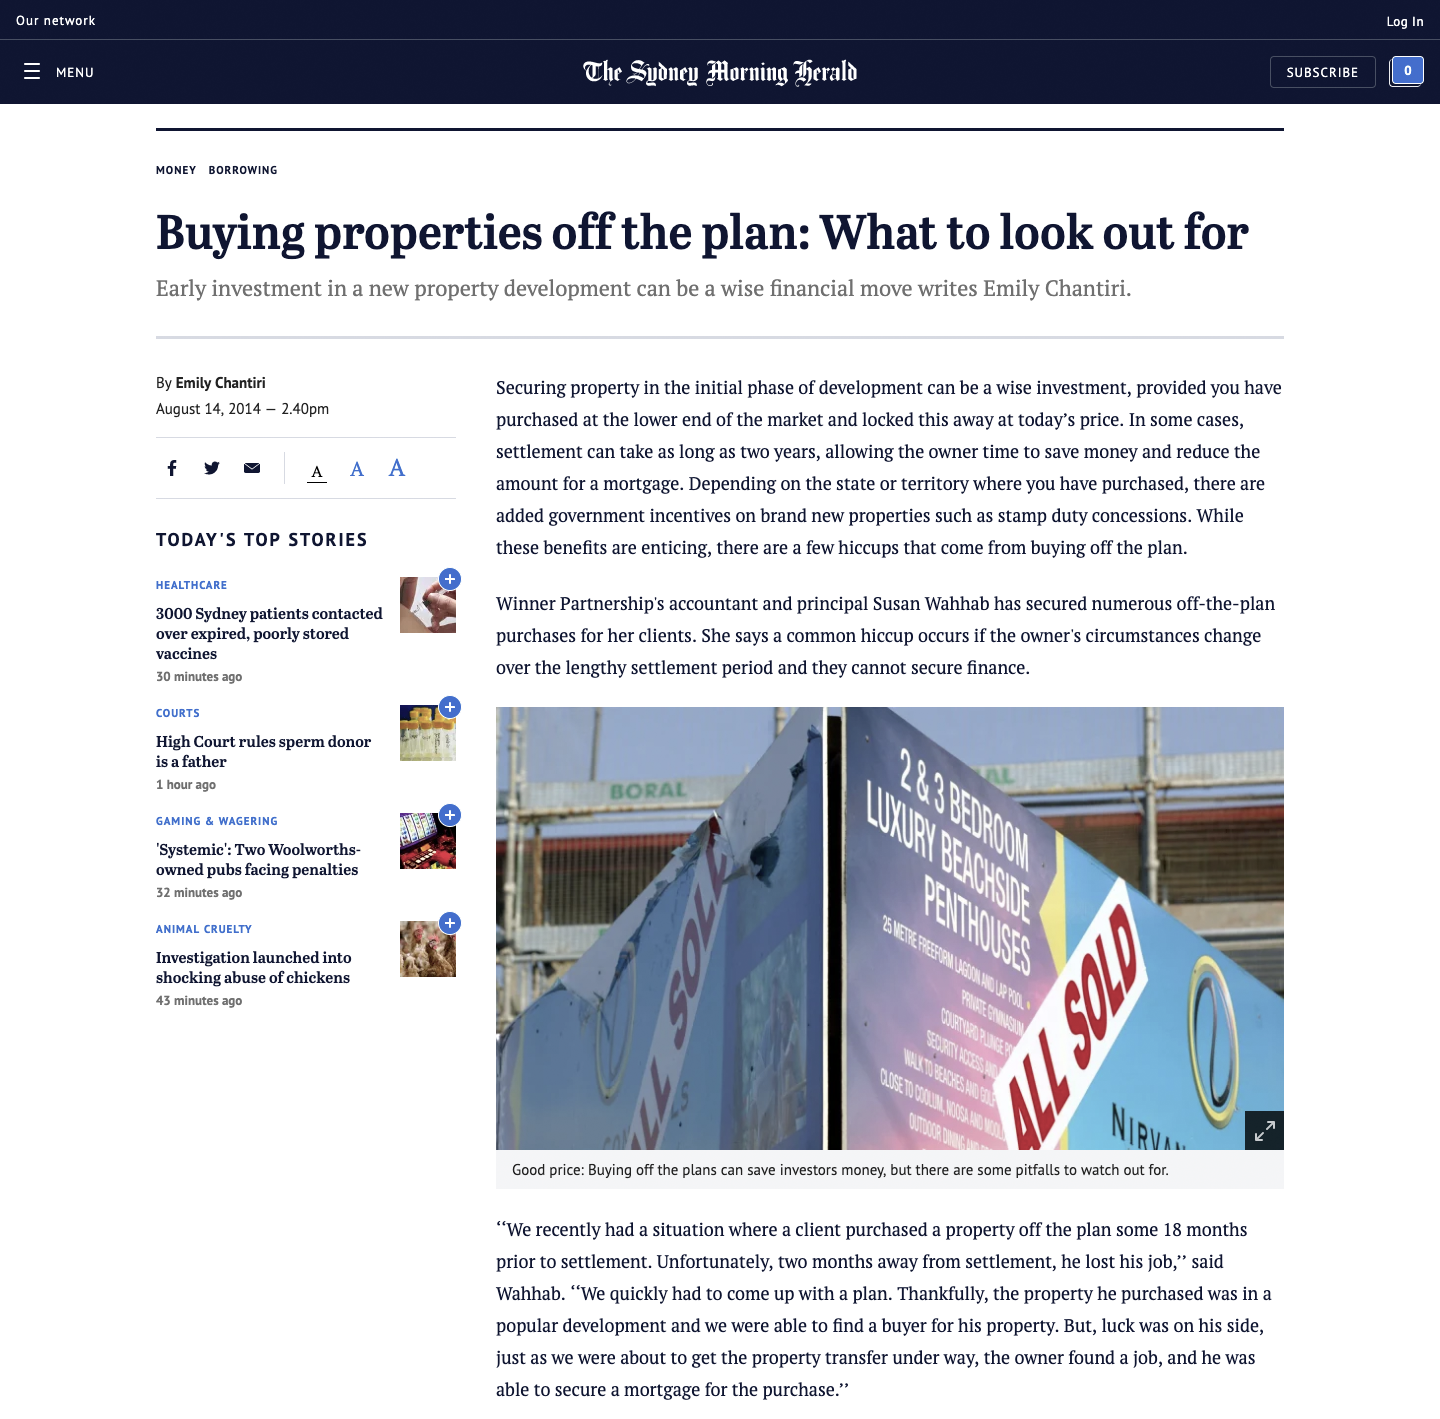 Buying properties off the plan: What to look out for